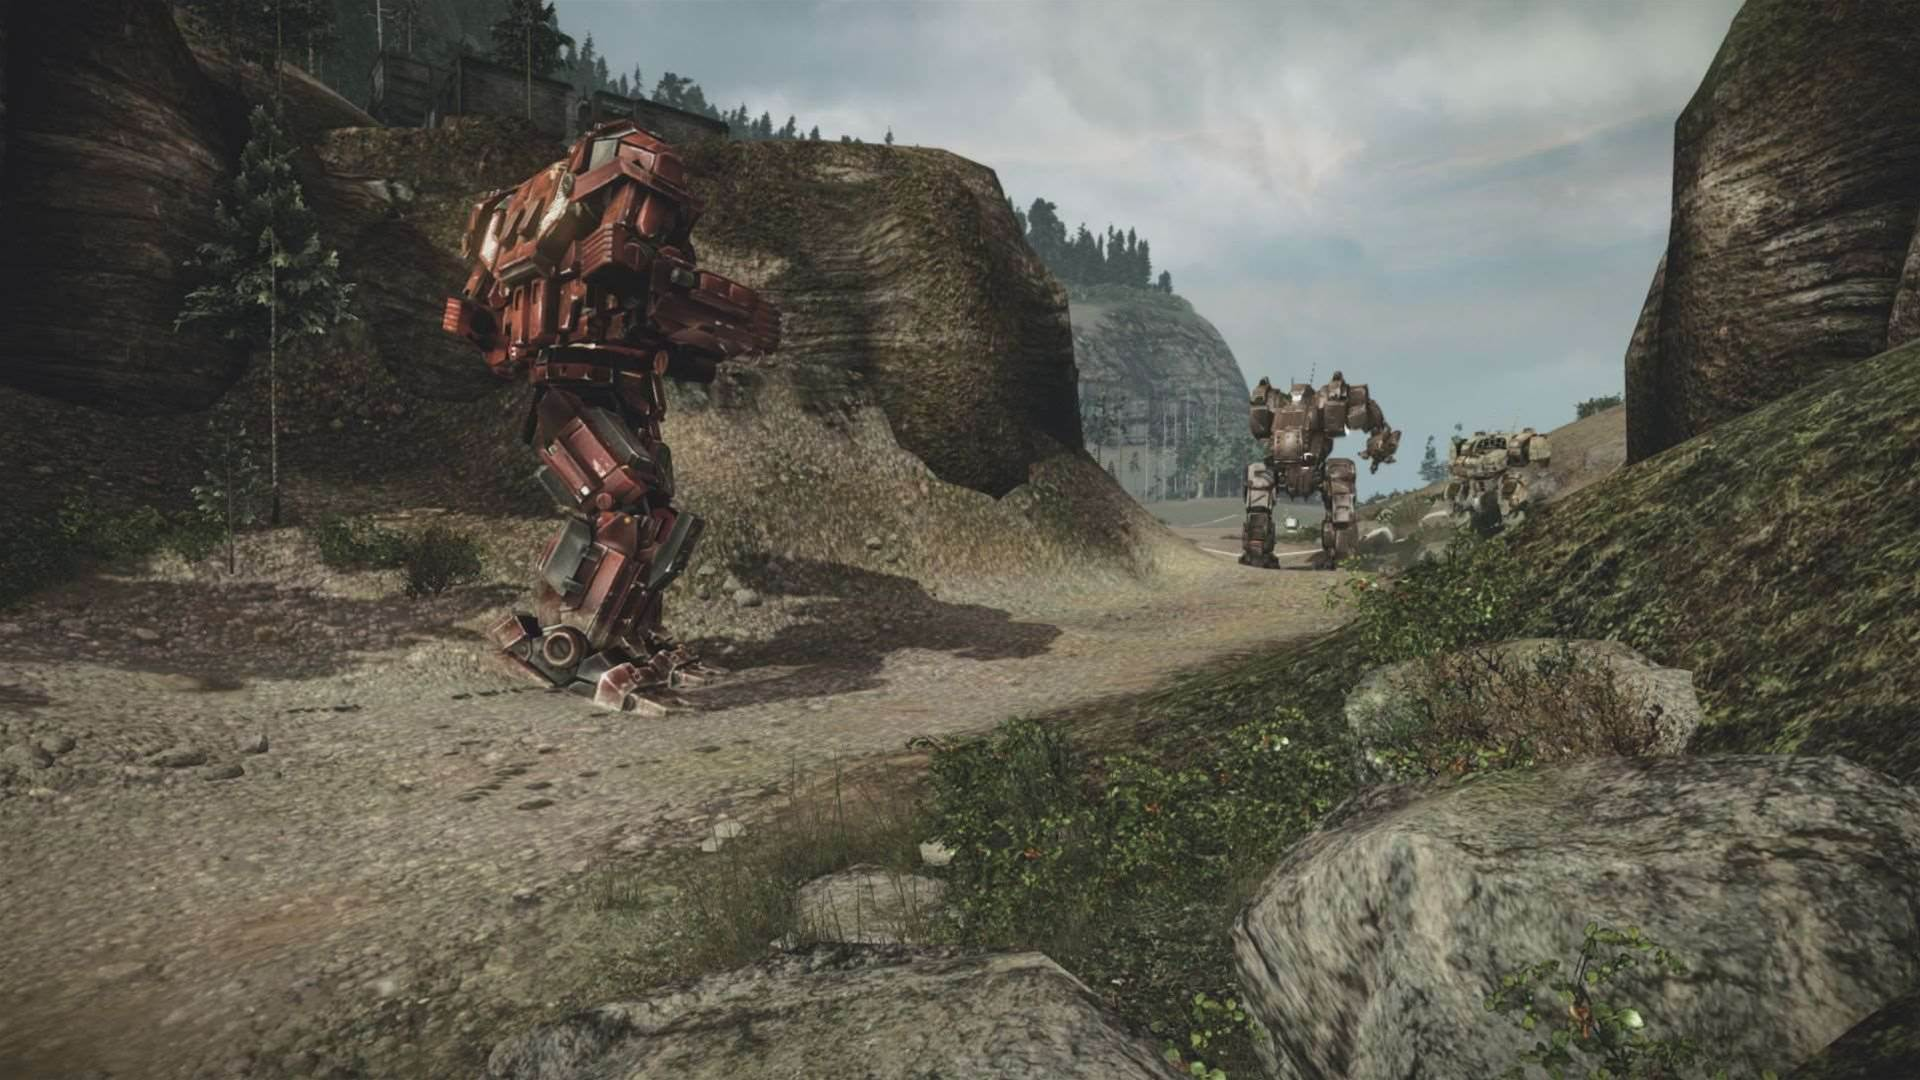 MechWarrior Online – new screens, gameplay trailer and frickin' lasers